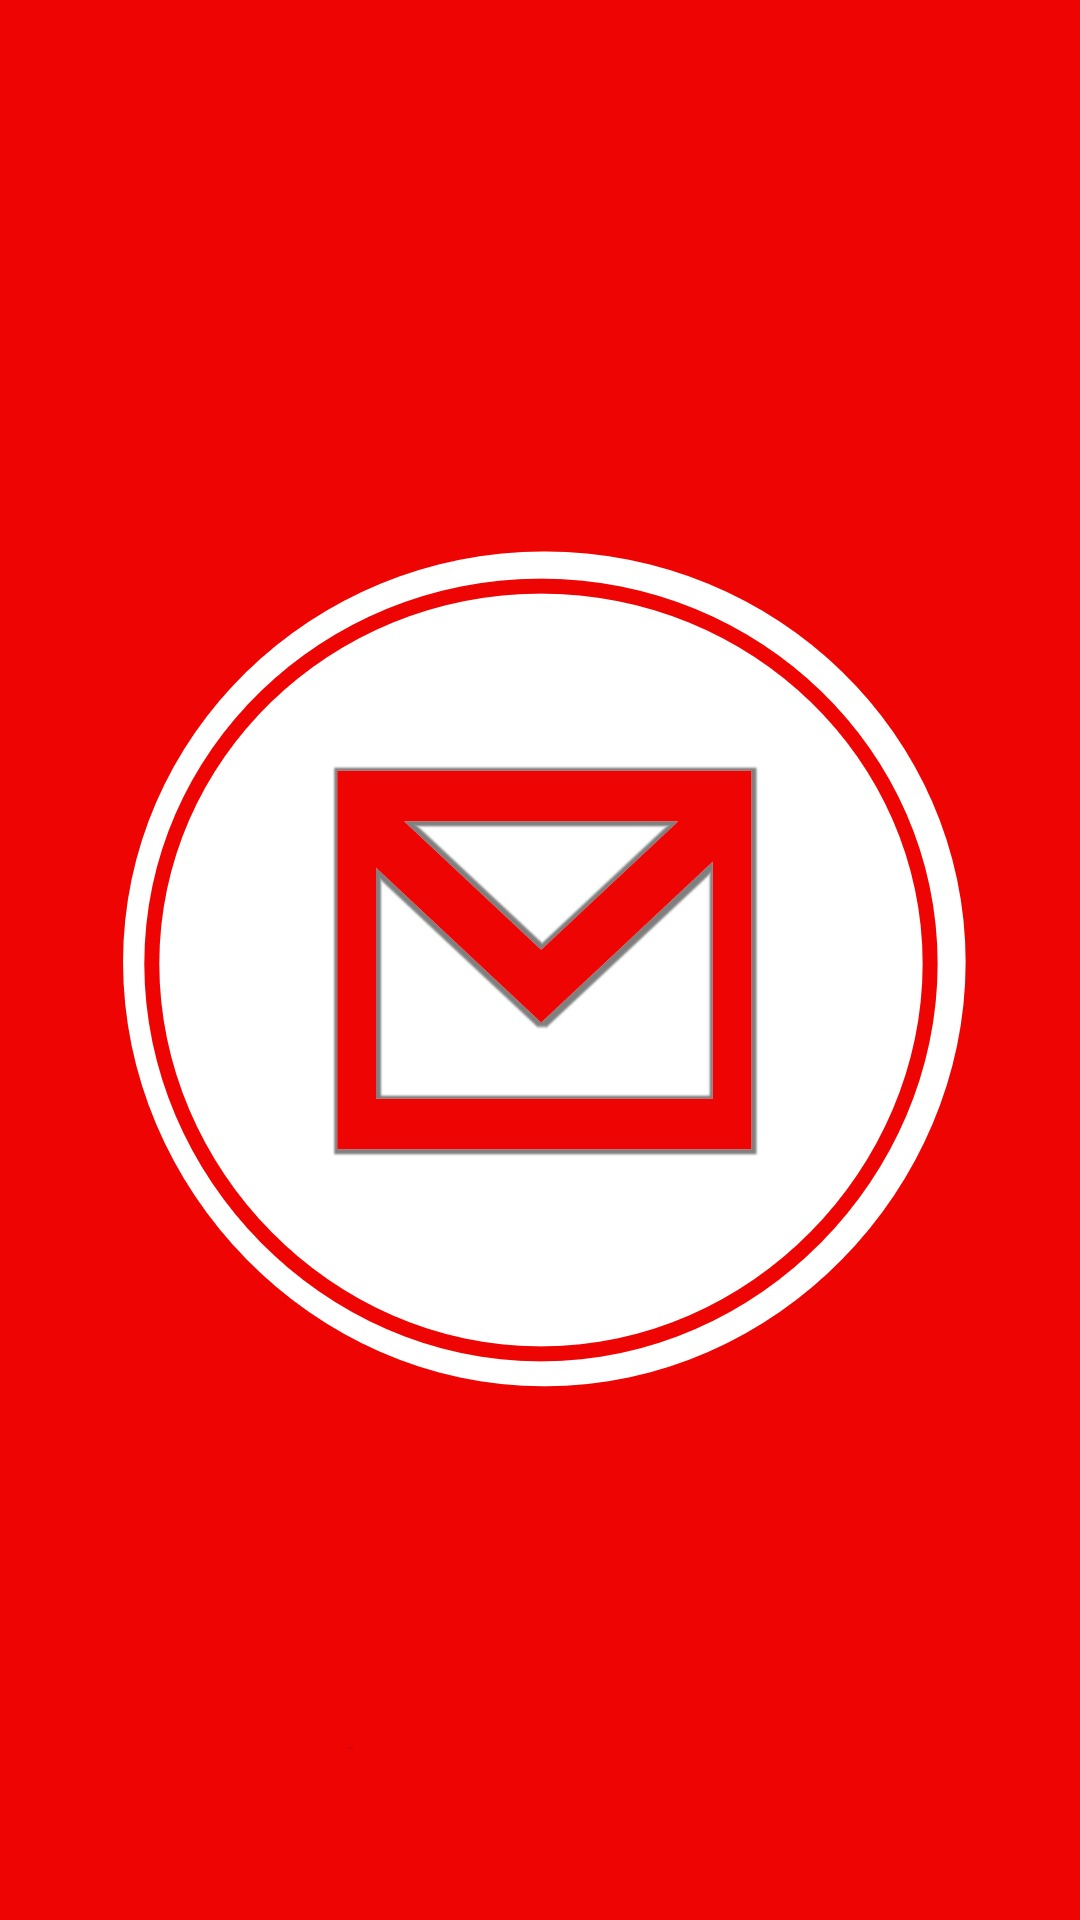 Instagram-cover-envelope-red-lotnotes.com.jpg